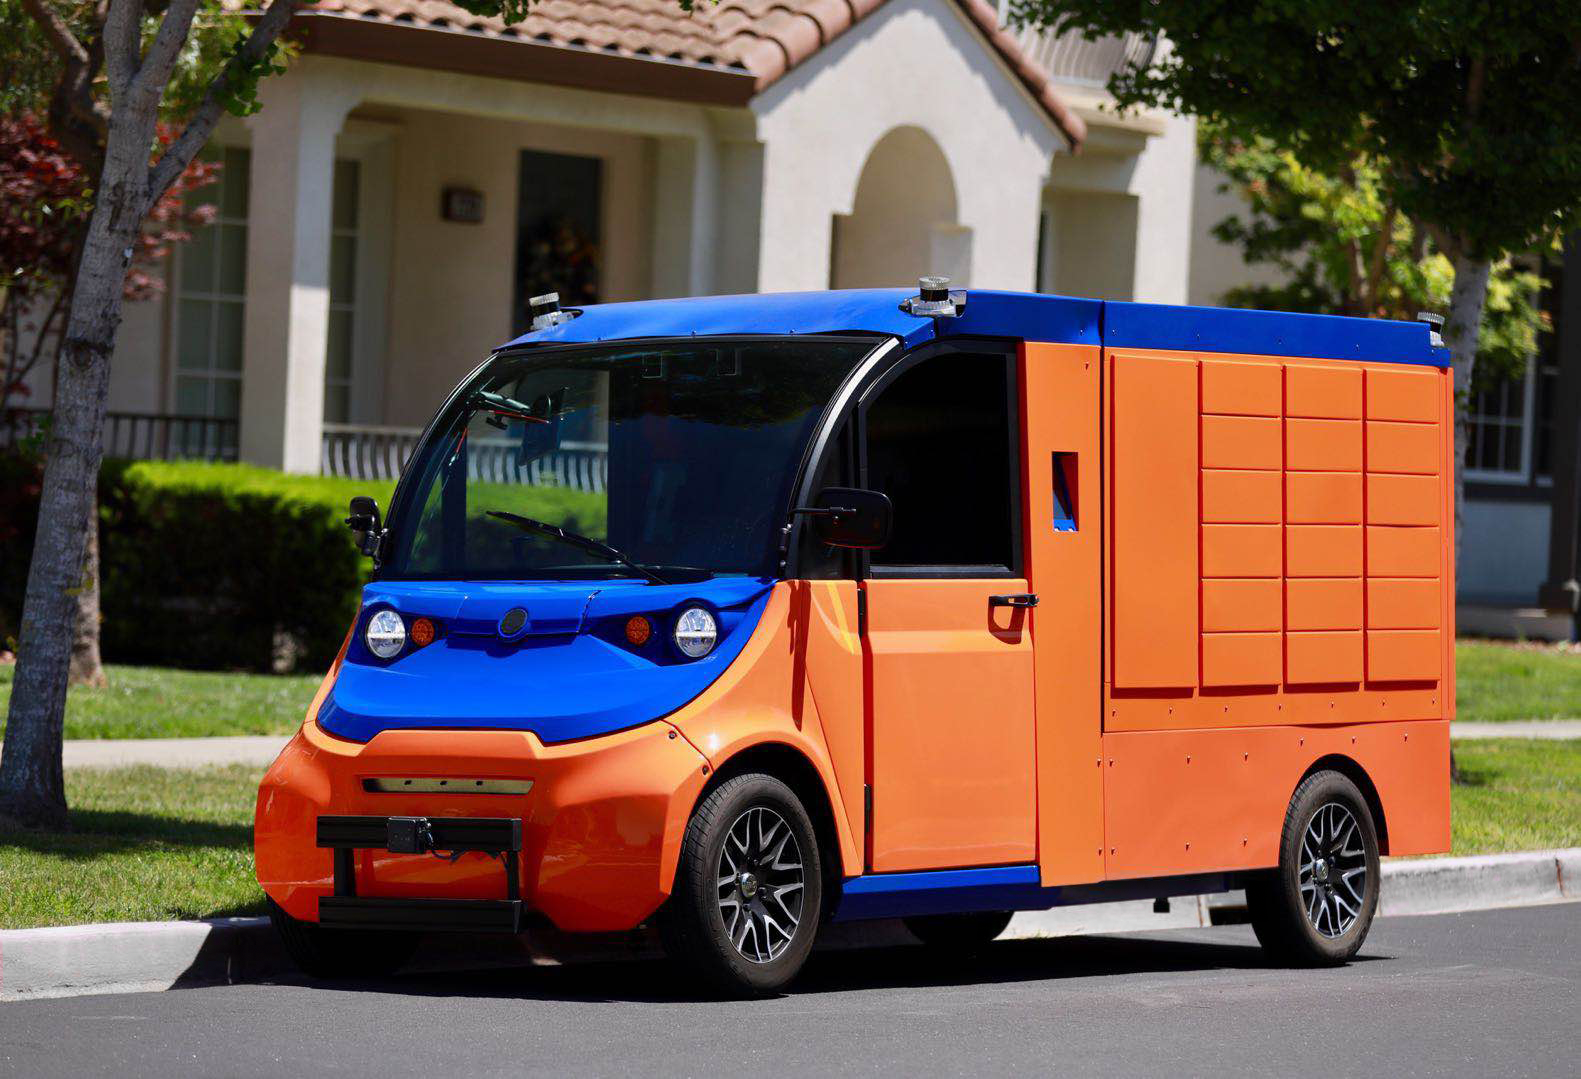 Boxbot Deal Explores Automated Last-Mile Deliveries on Customer's Schedule